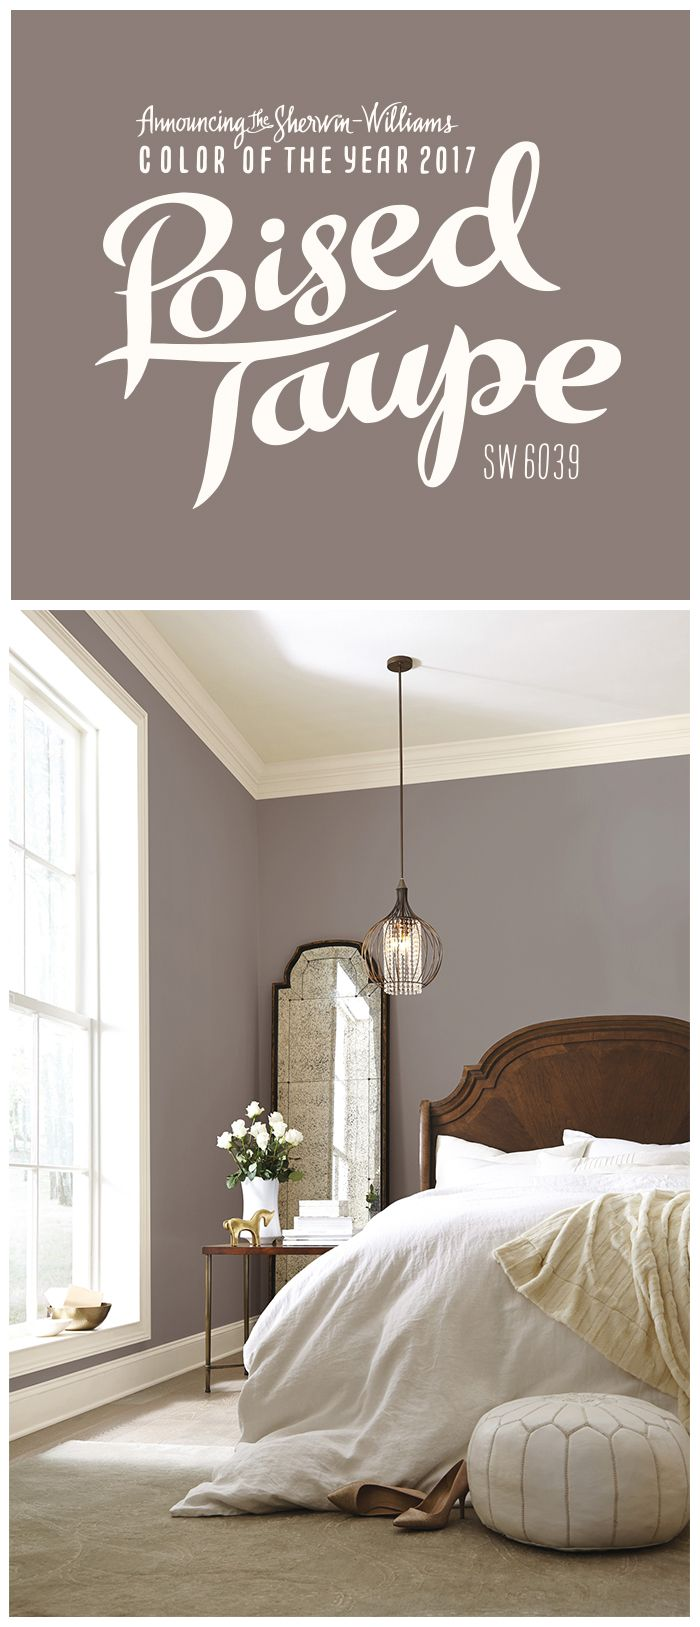 We're thrilled about our 2017 Color of the Year: Poised Taupe SW 6039. This time